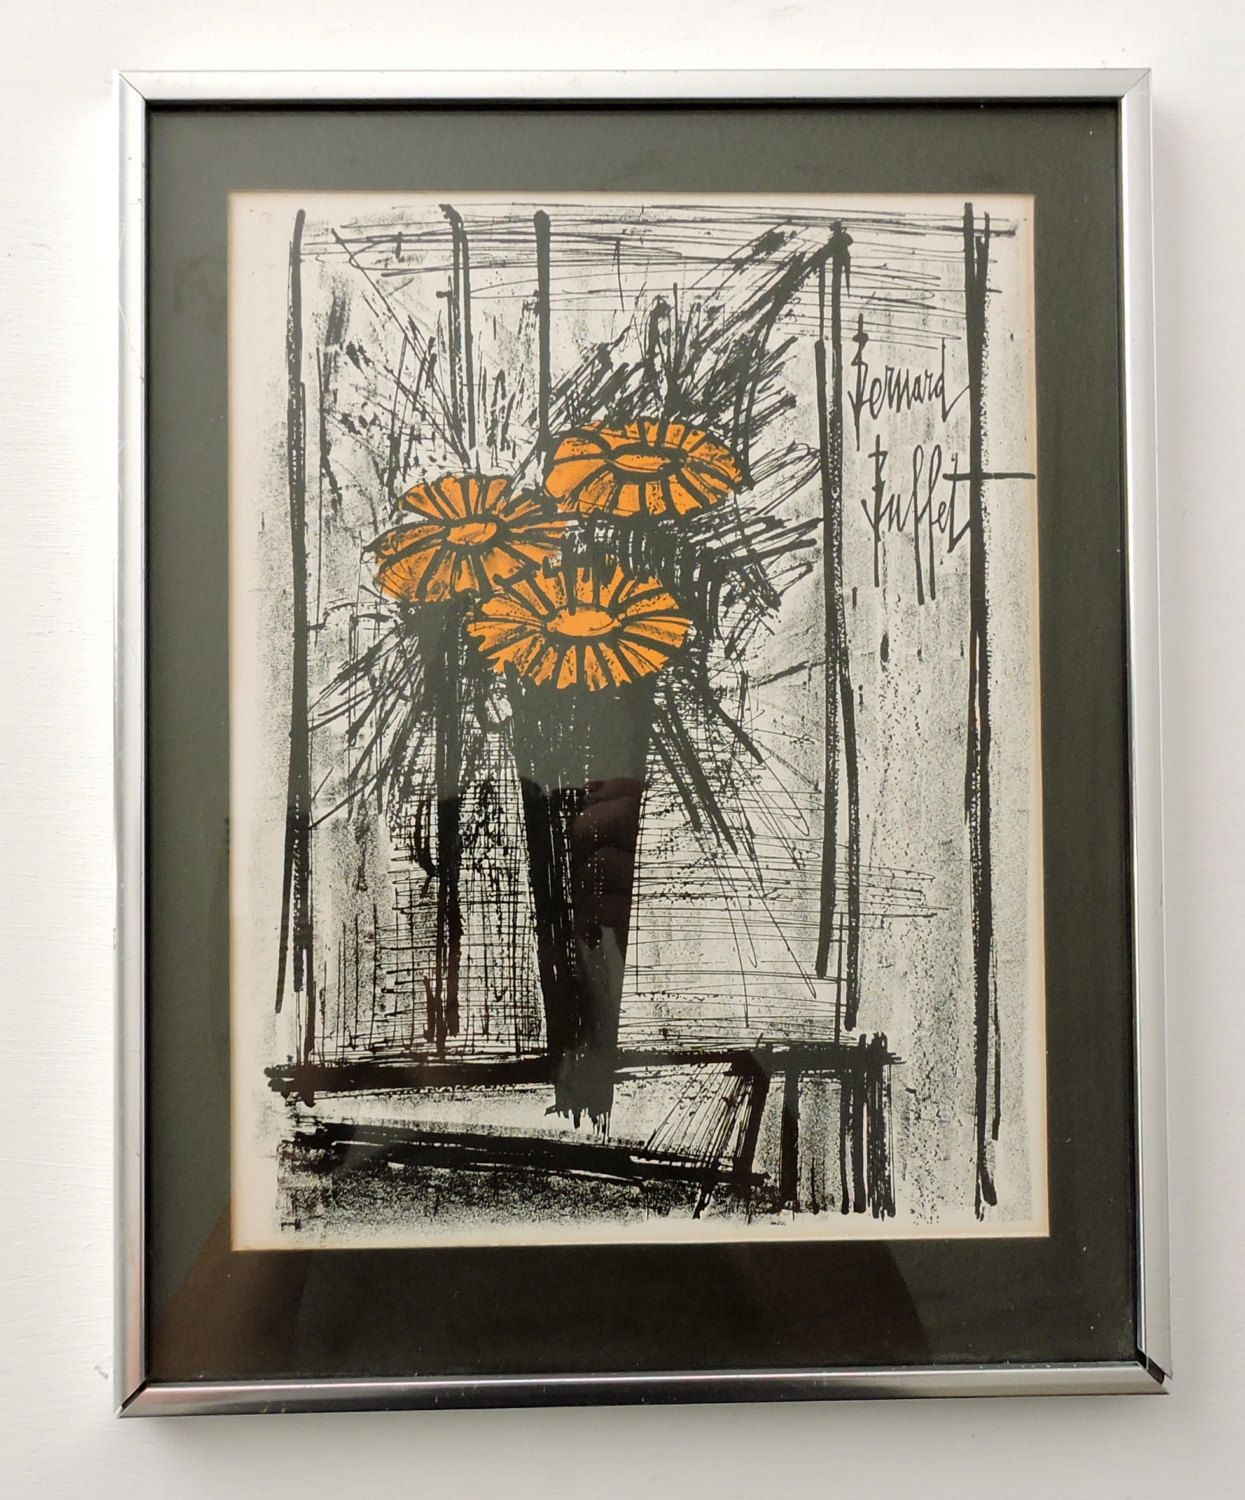 Astounding Signed Bernard Buffet Lithograph Orange Flowers Framed Download Free Architecture Designs Lectubocepmadebymaigaardcom